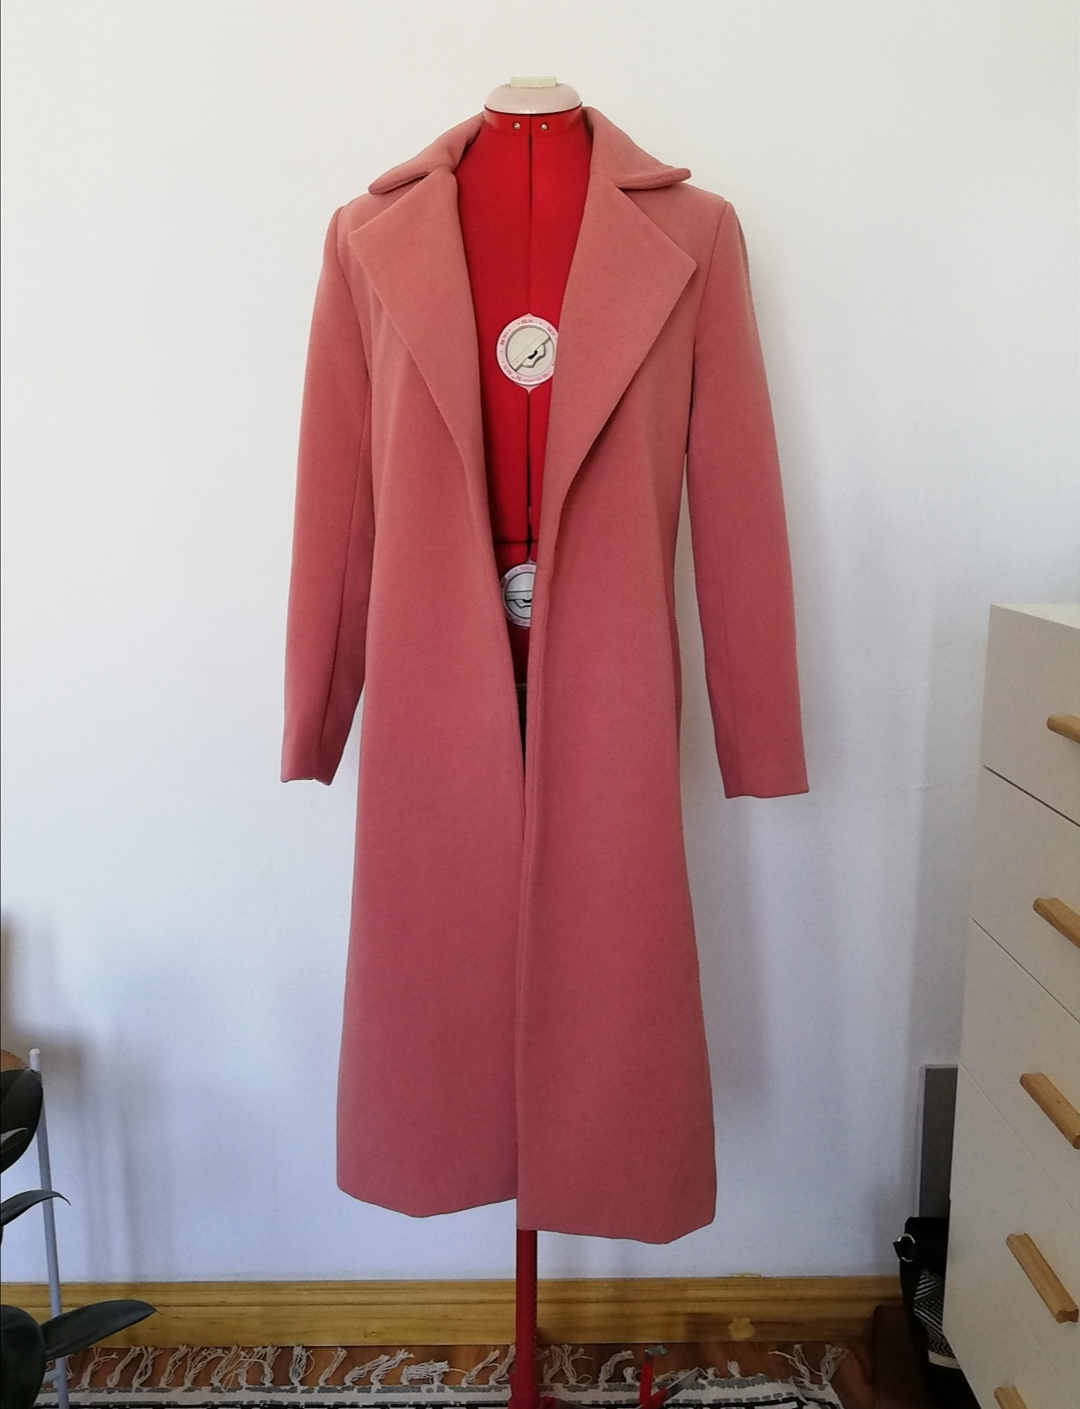 Pink full-length coat.